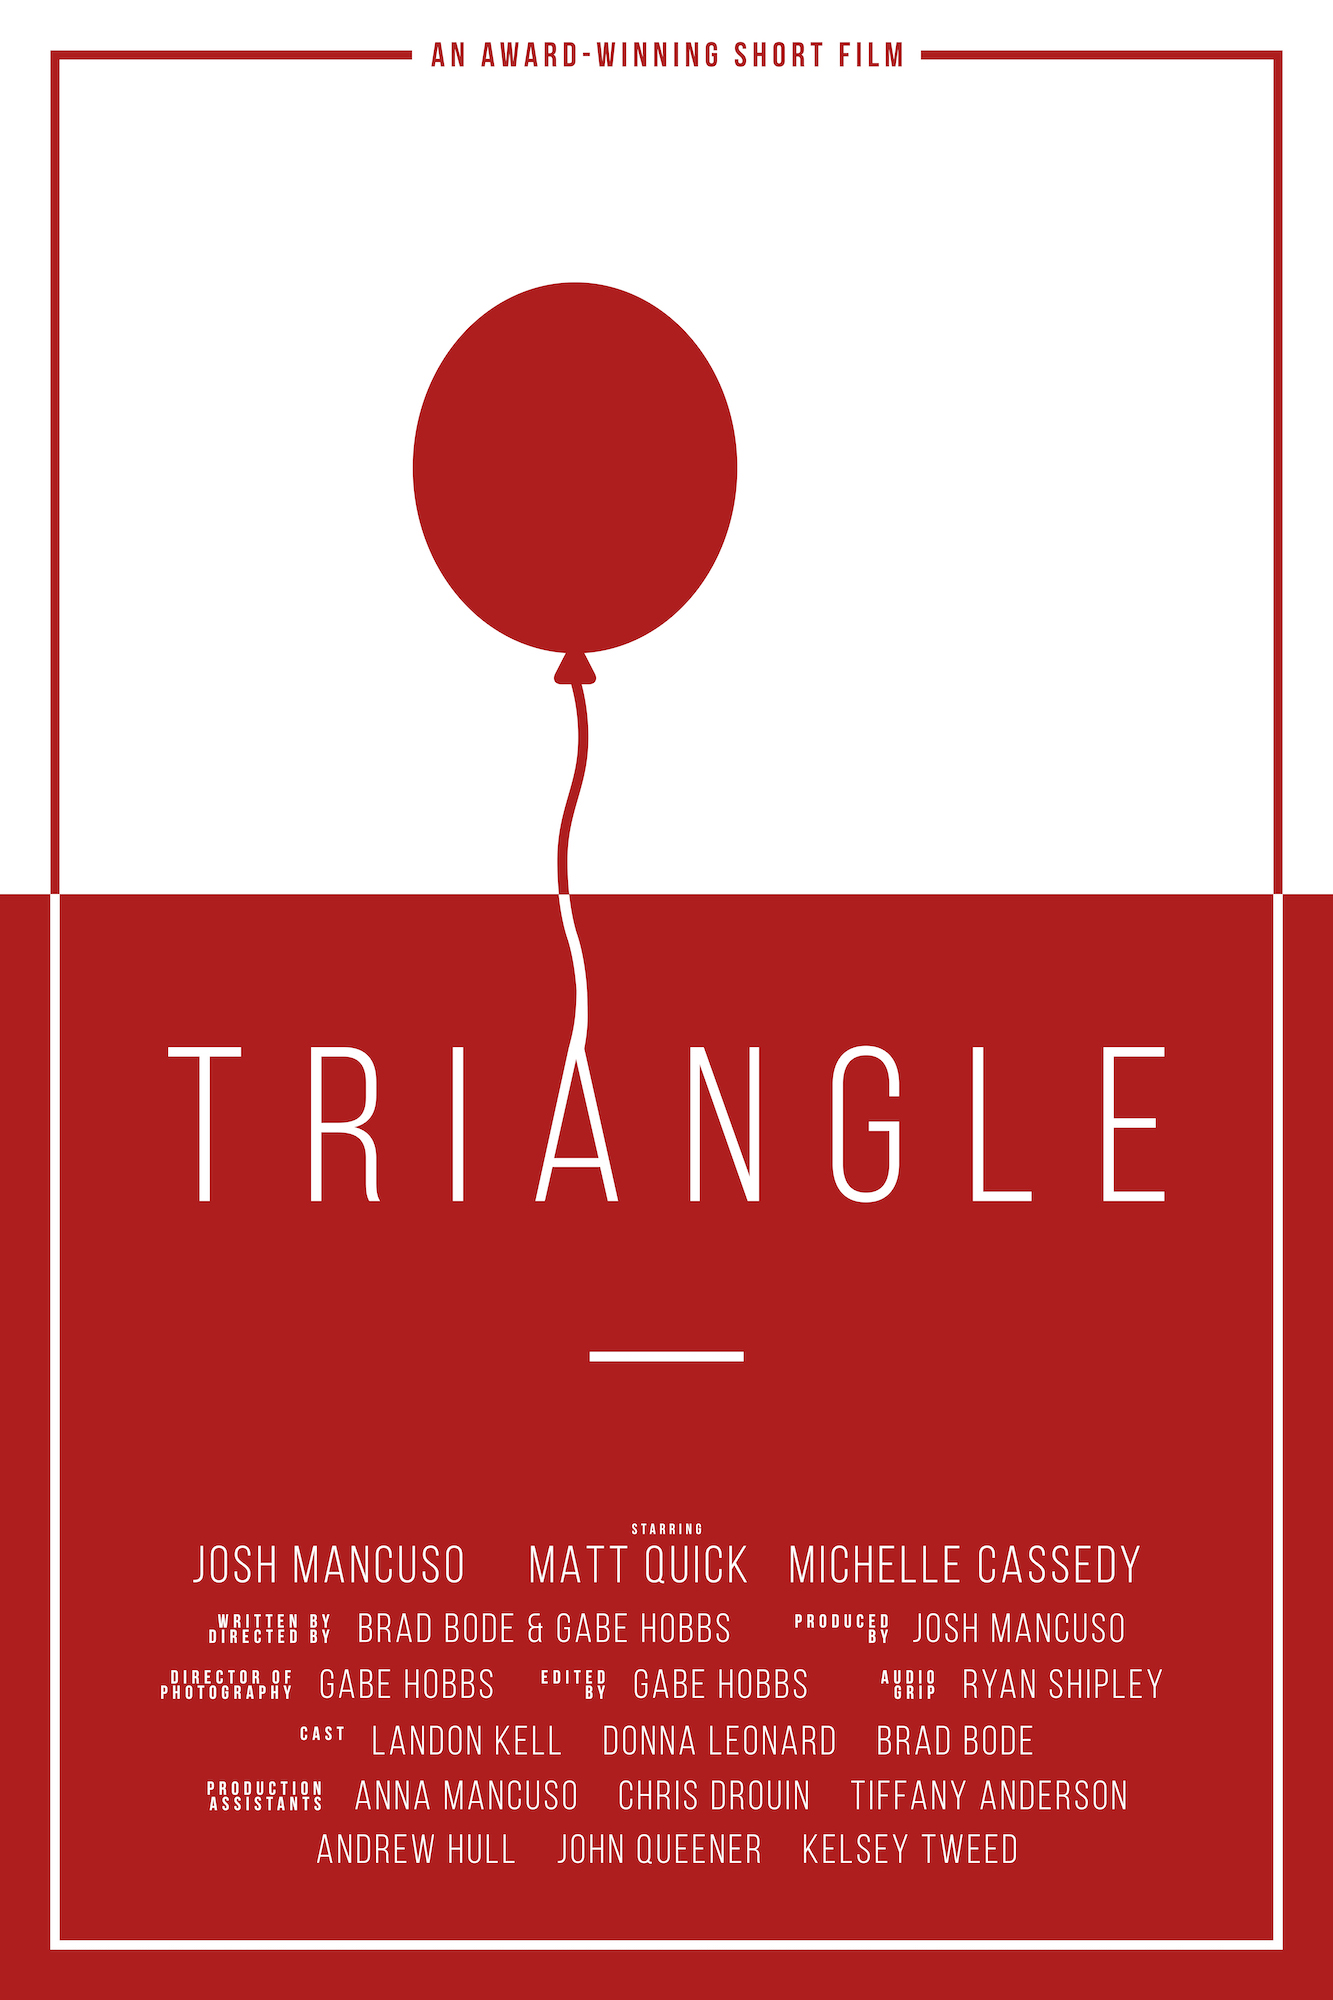 Triangle - In 2017, we assembled a team to compete in the 54 Film Fest in Knoxville, TN. Along with dozens of other teams, we had 54 hours to write, shoot, and edit a 7-minute short film.